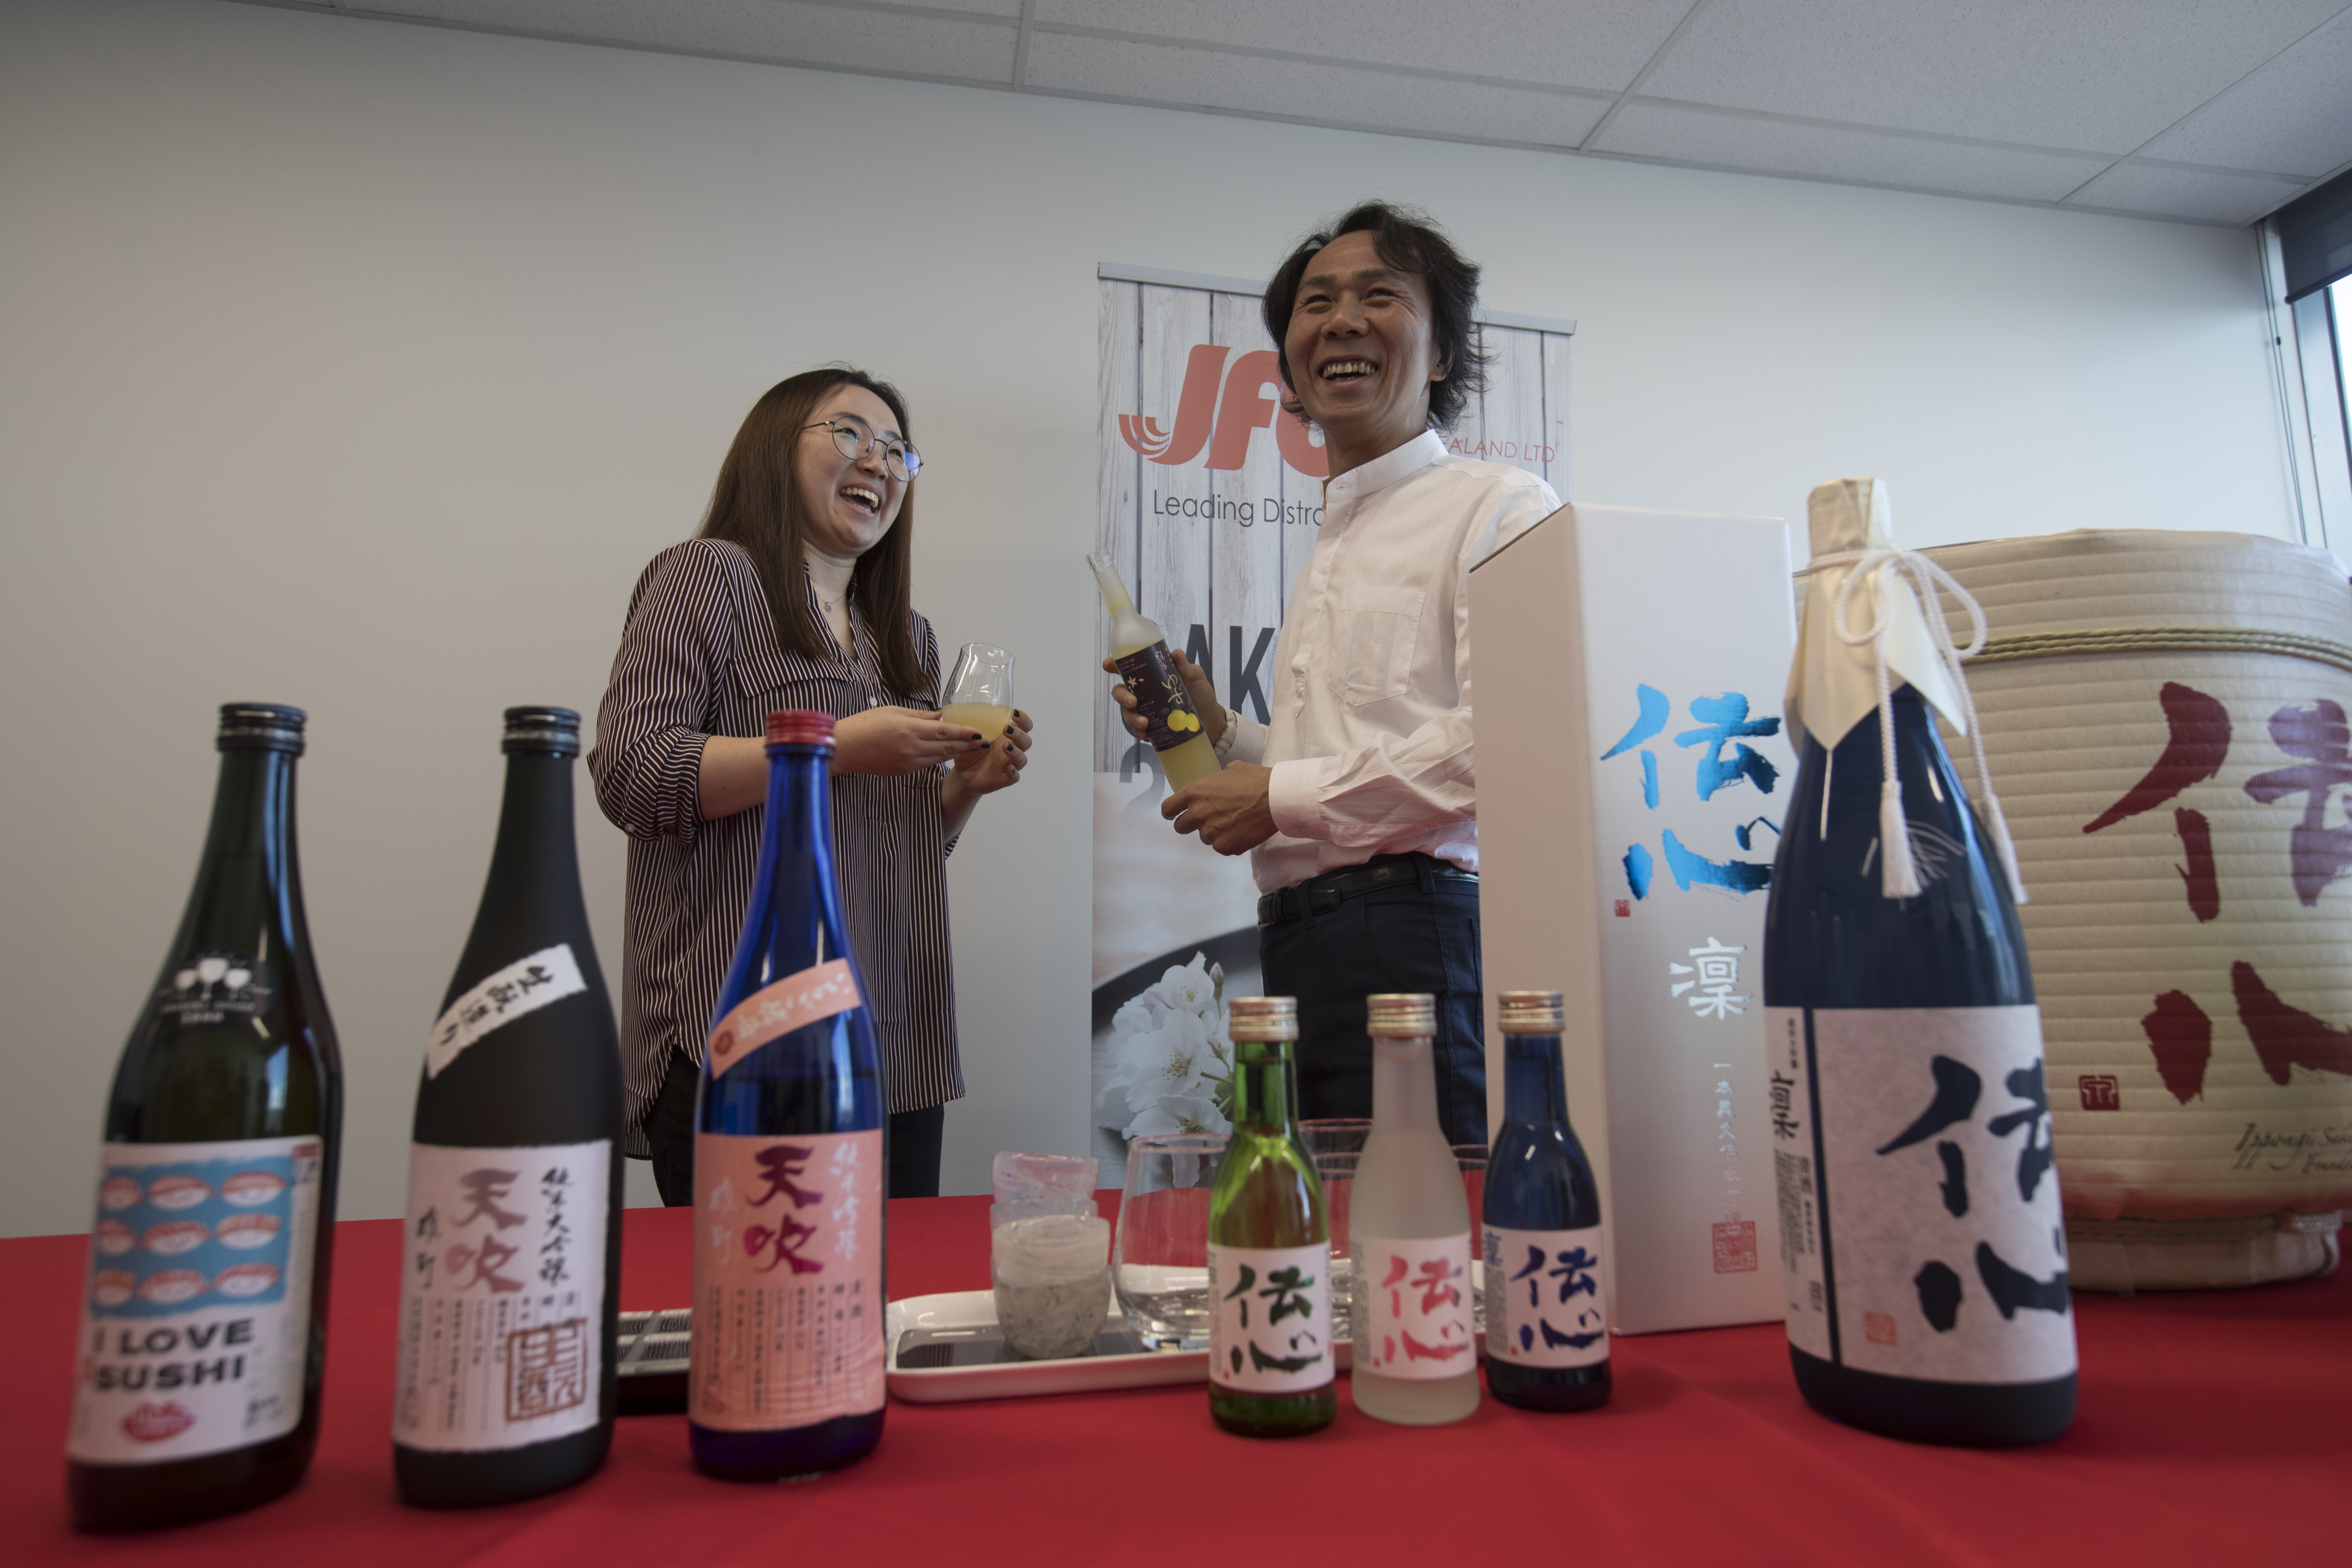 Japanese brewers want to turn NZ into a nation of sake drinkers - NZ